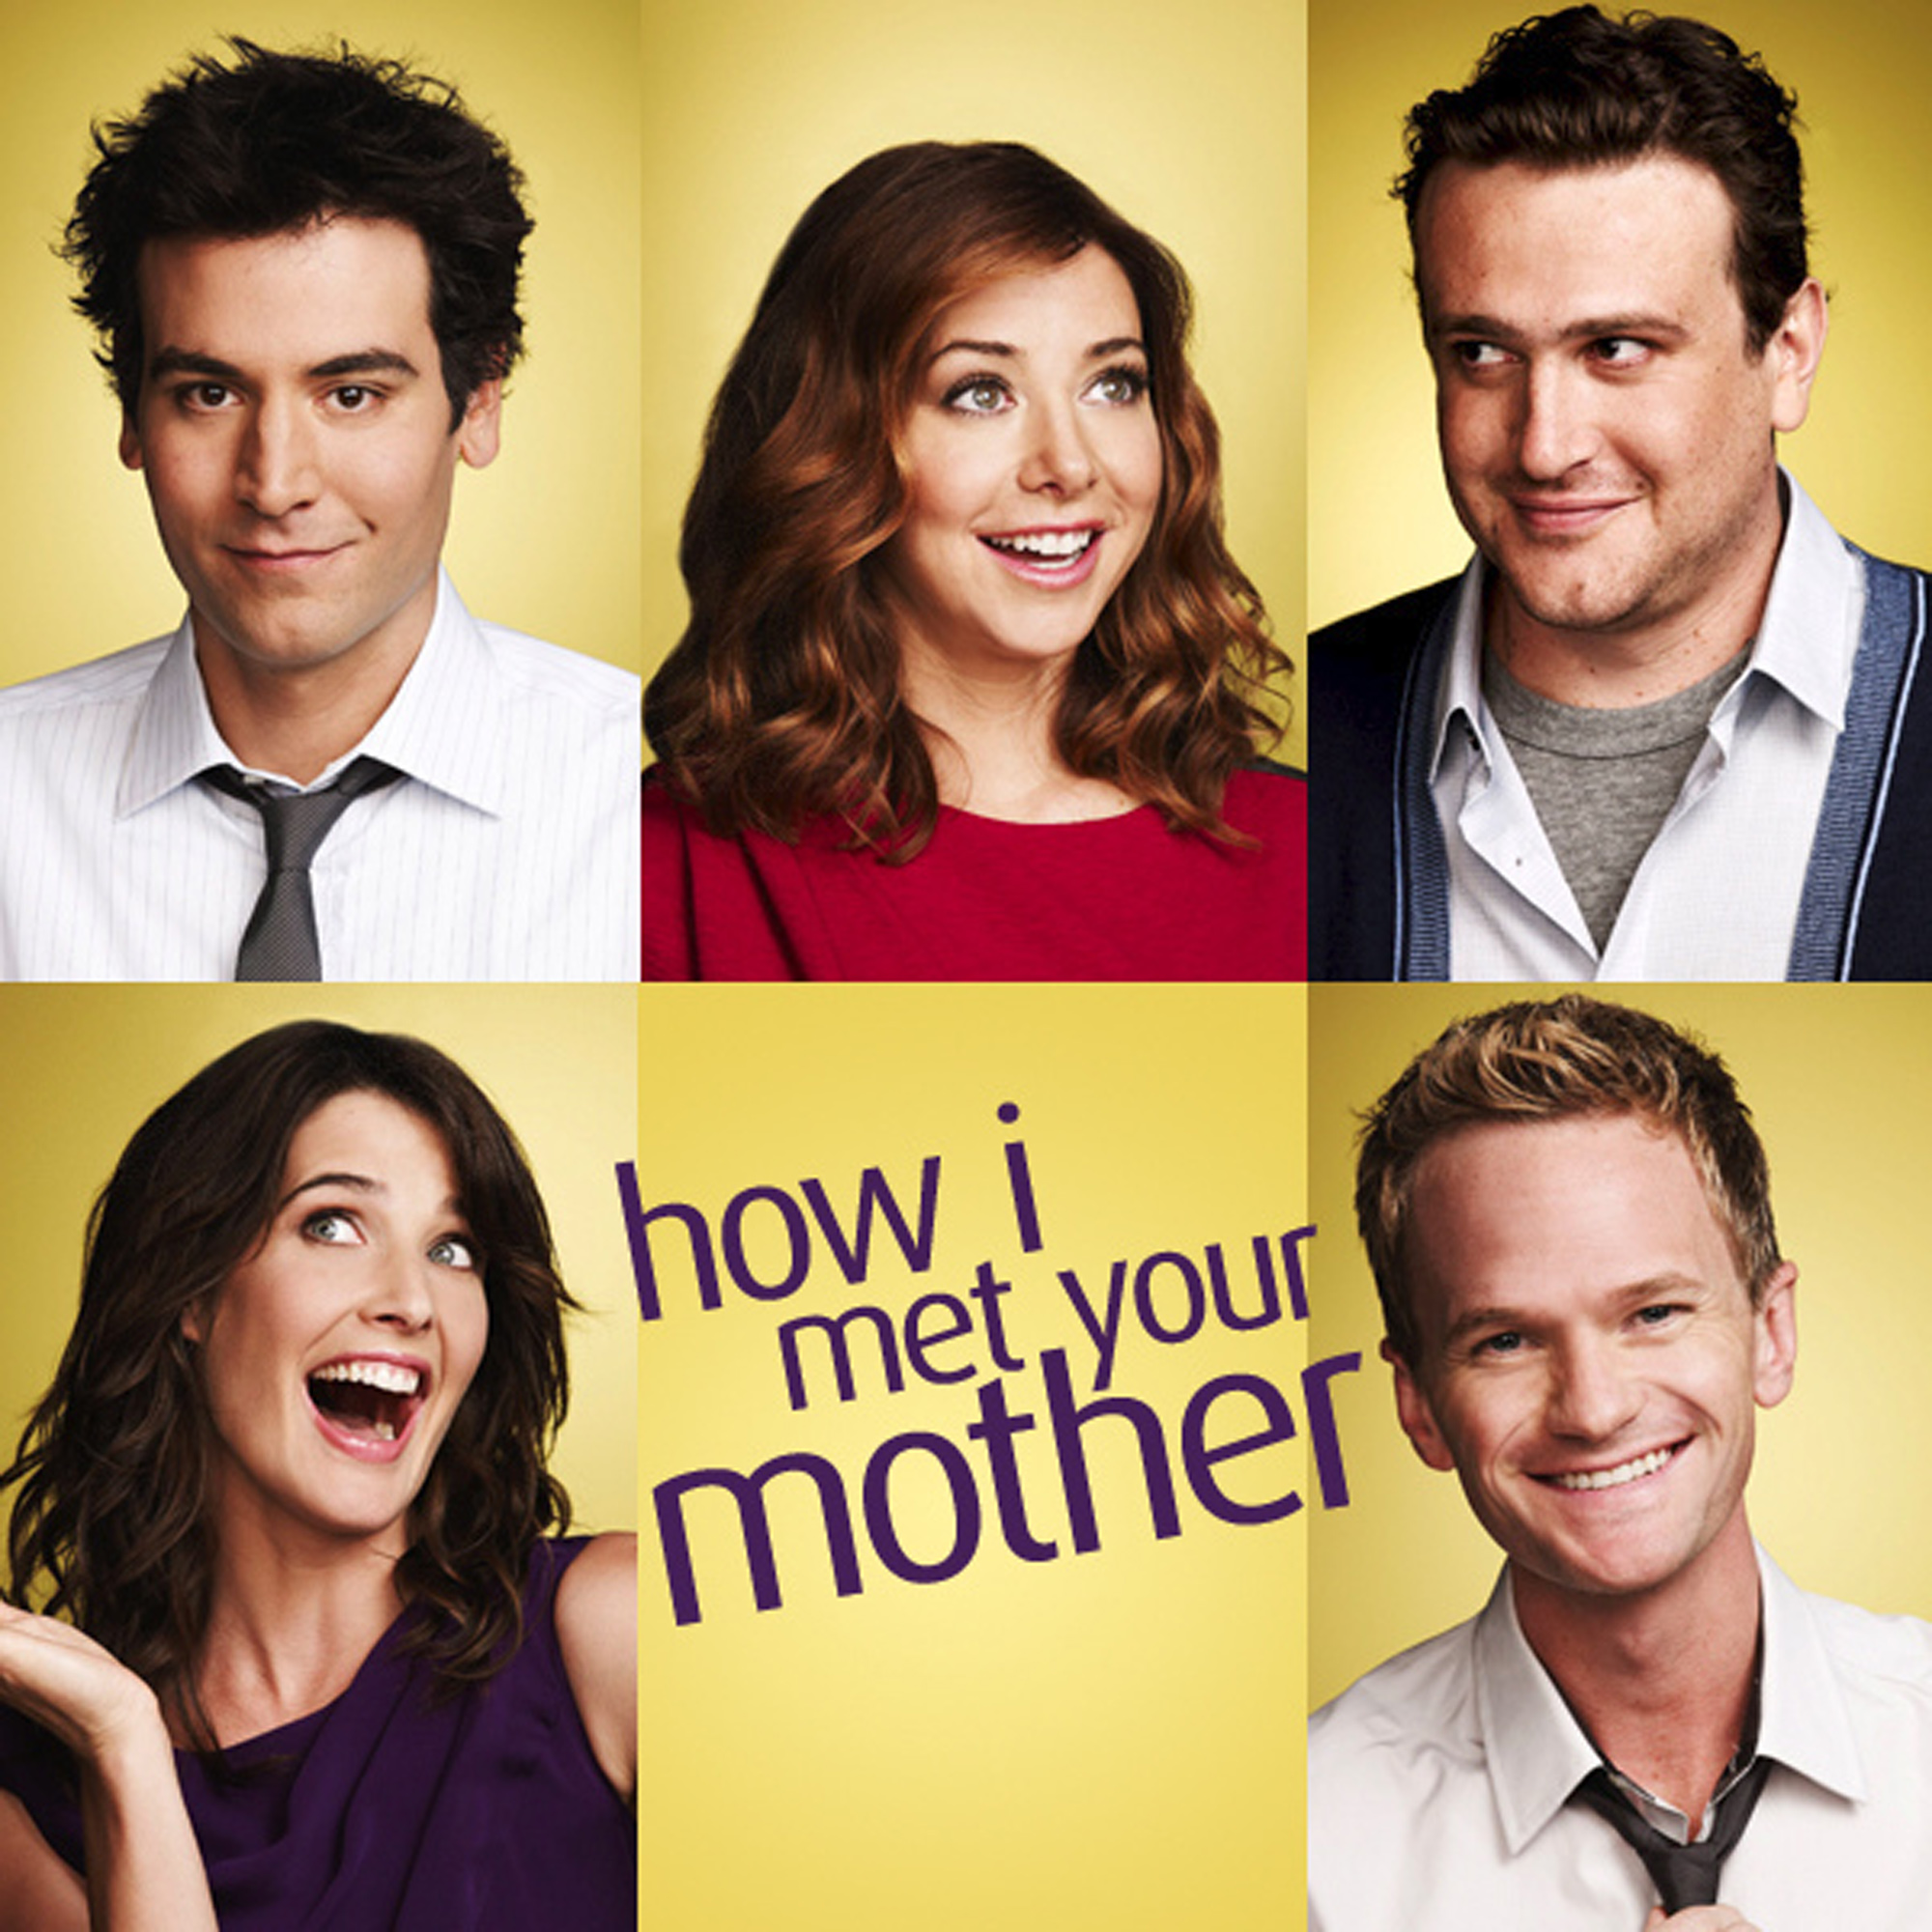 How I Met Your Mother 720p Hd 3d Wallpaper 1080p Wallpaper